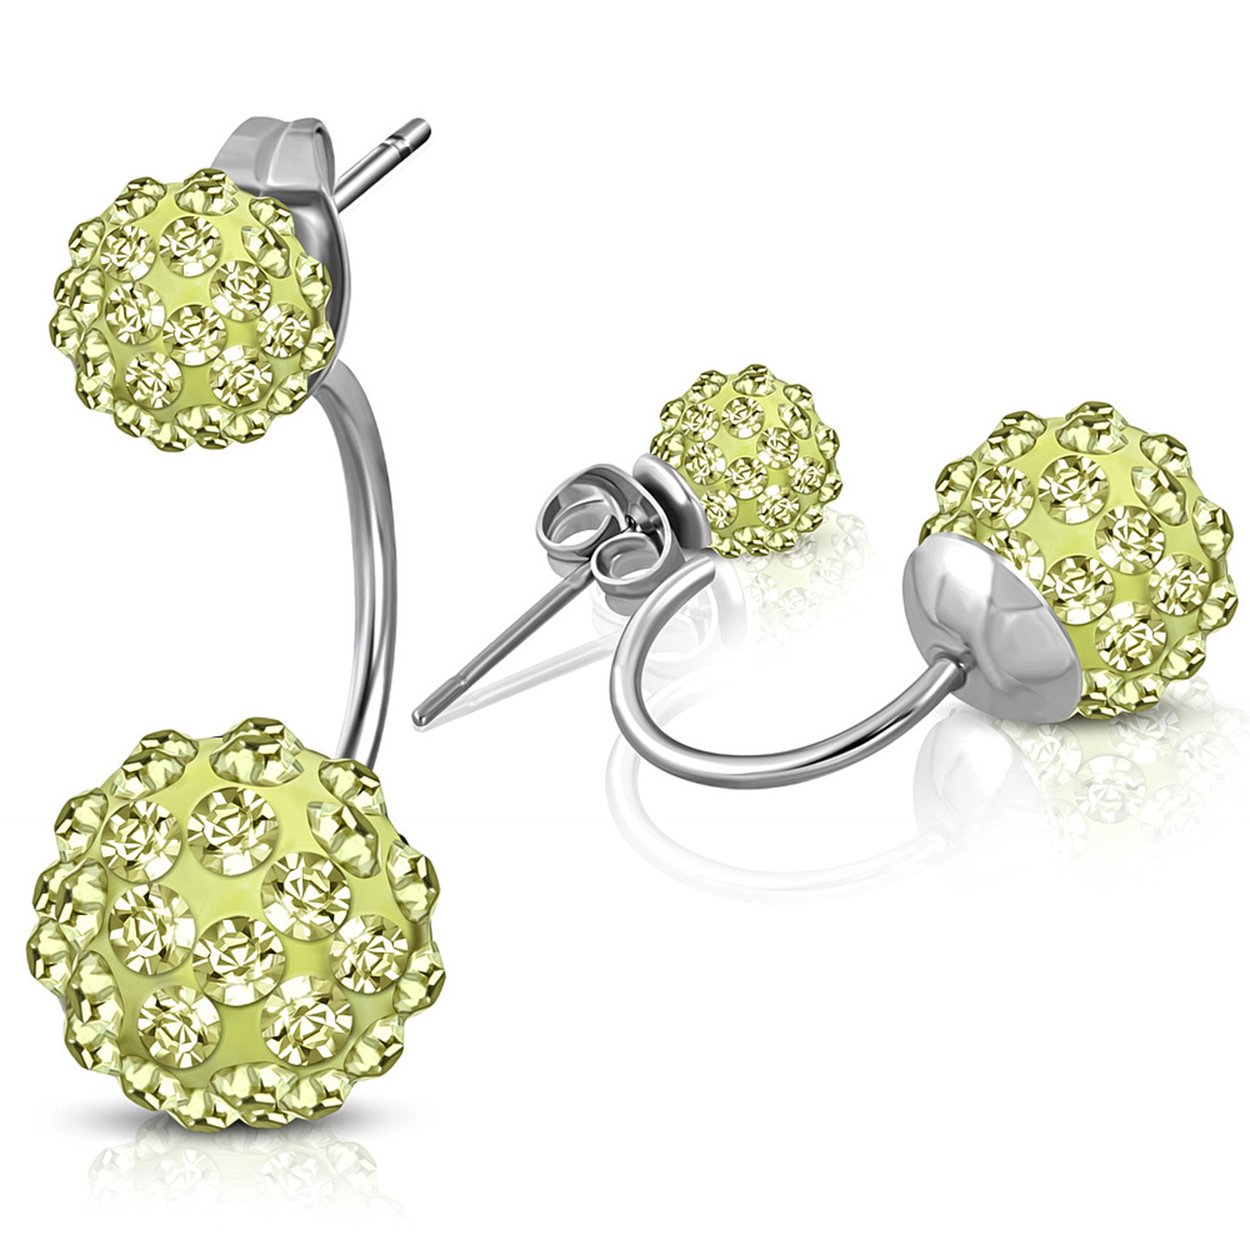 6mm /& 10mm Ball Size Best Wing Jewelry Stainless Steel Double Sided Balls //w Jonquil Yellow CZ Stud Earrings